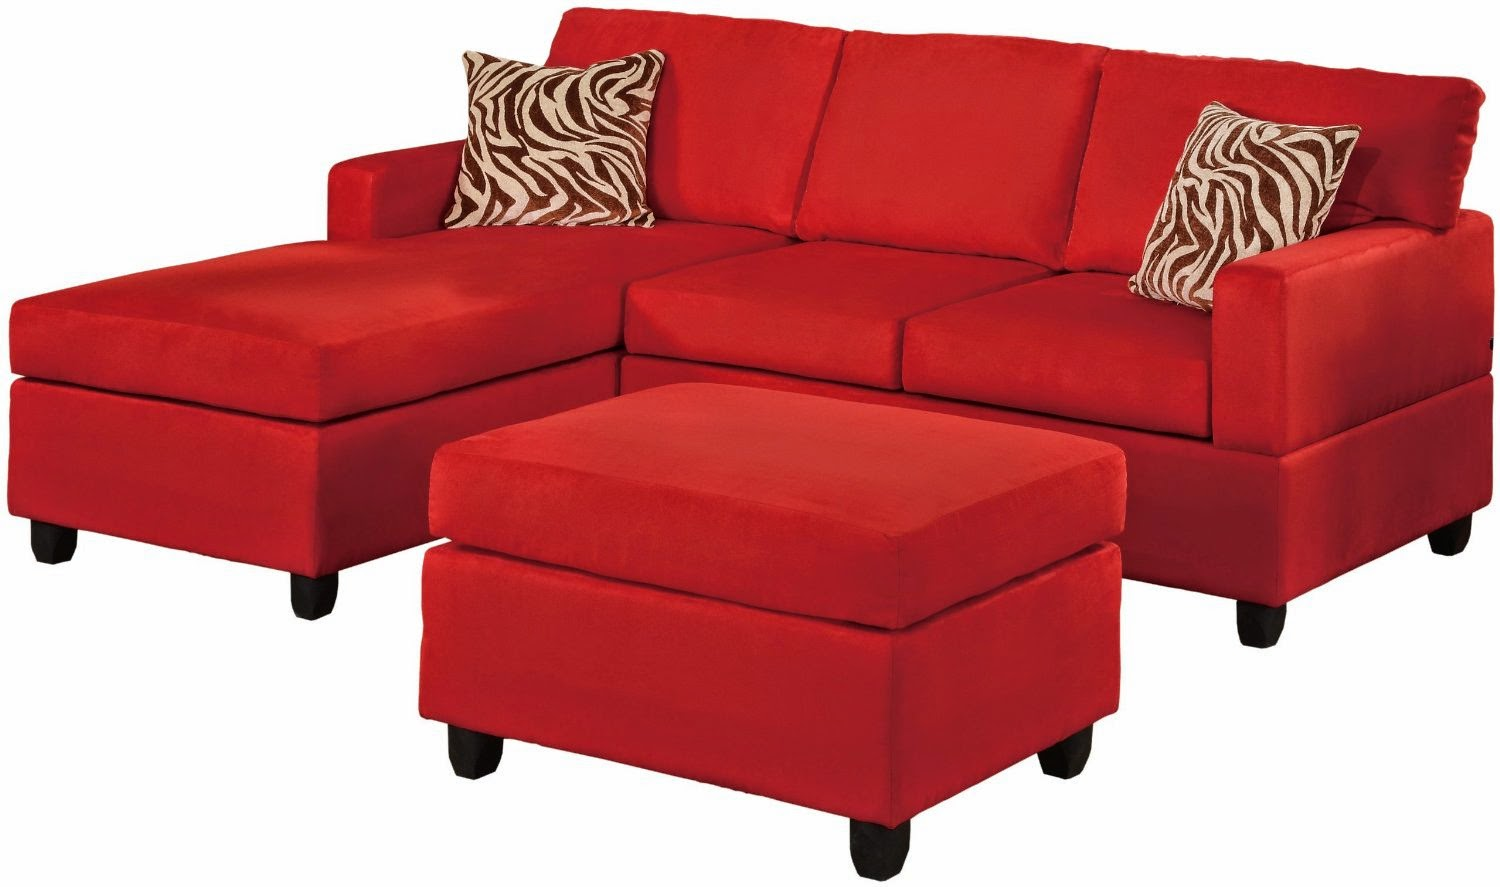 Red couch for Furniture sofas and couches